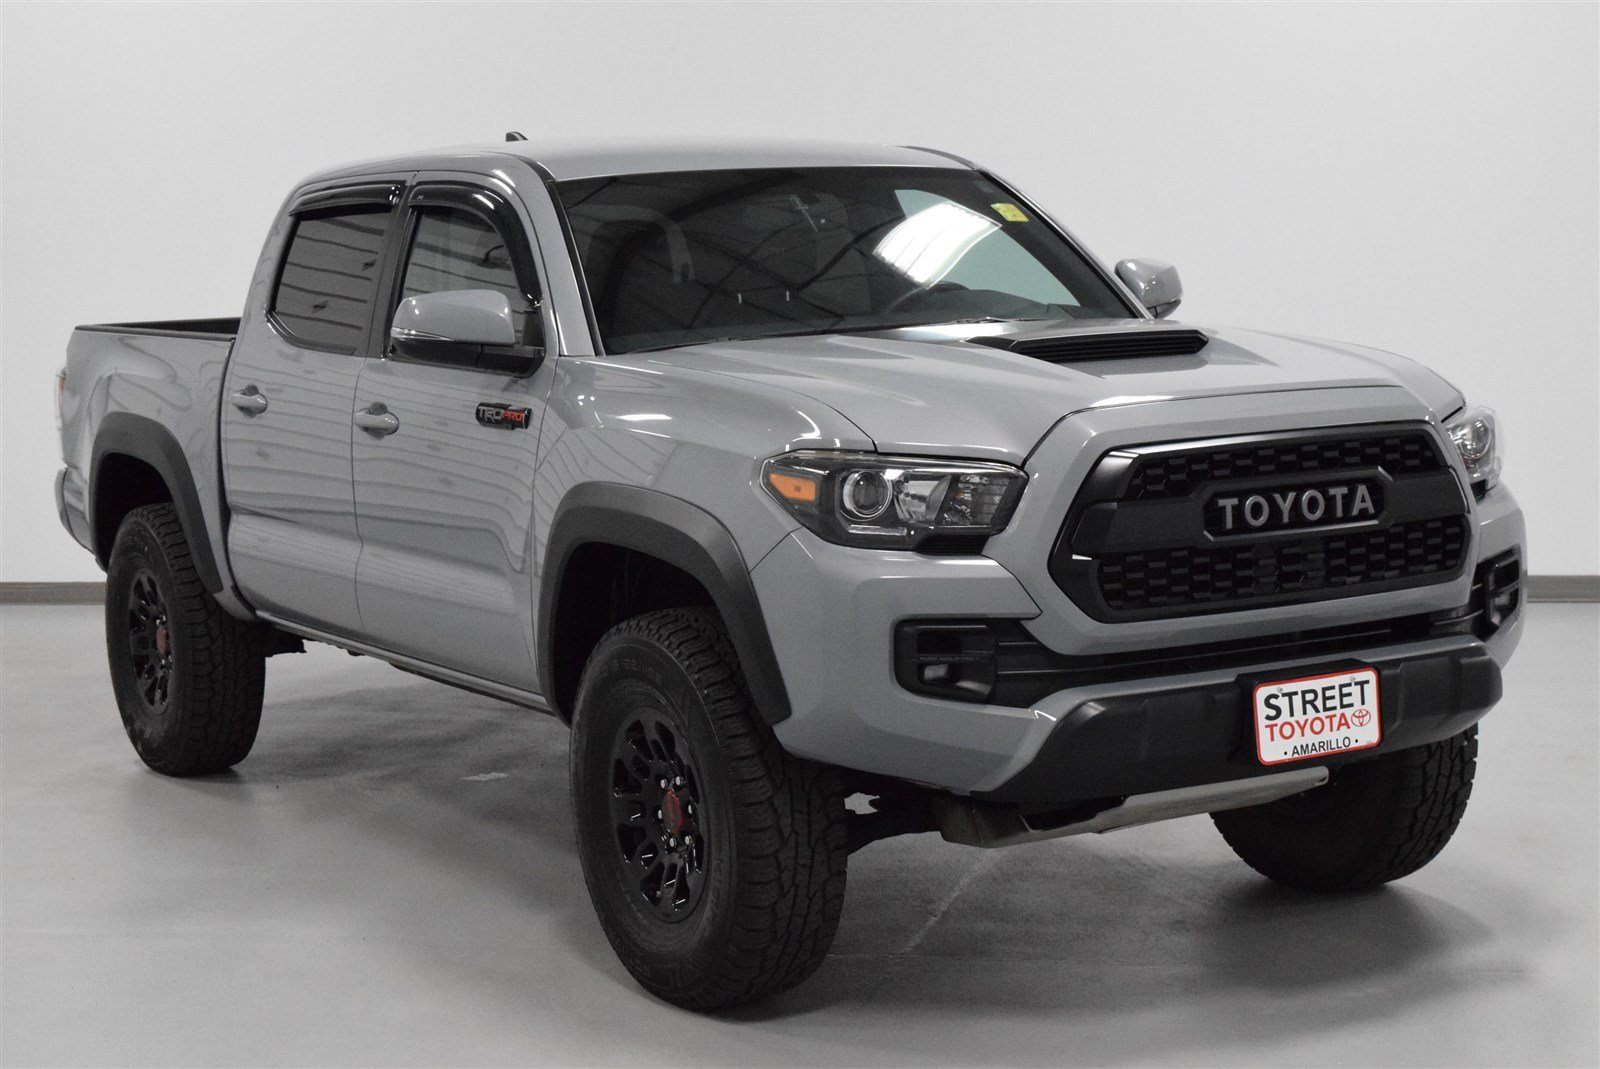 2015 toyota tacoma 4wd. Black Bedroom Furniture Sets. Home Design Ideas